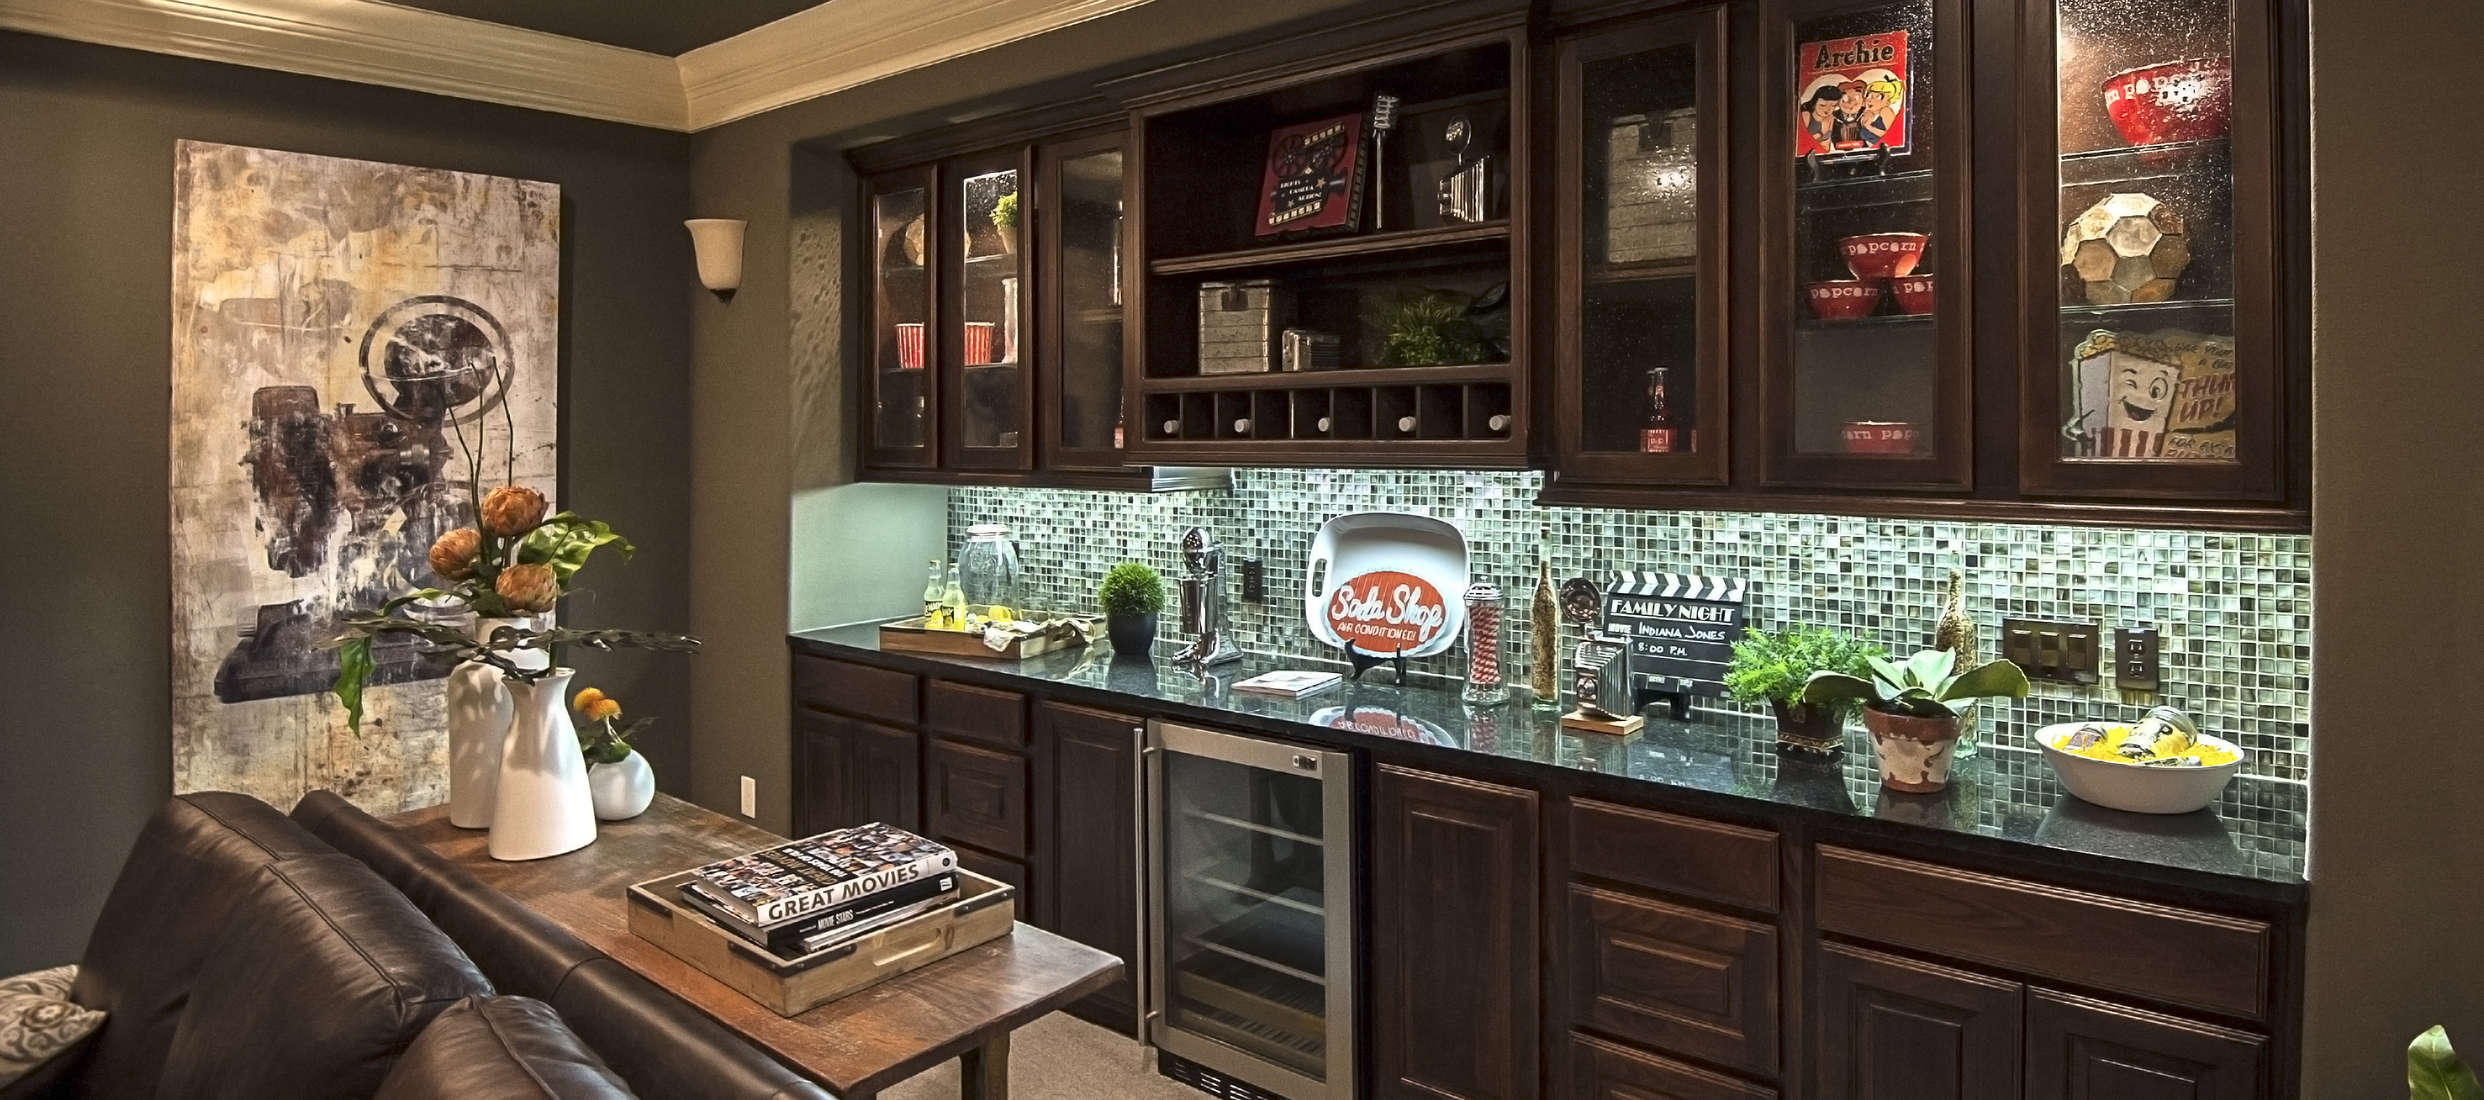 J Kraft, Inc. | Custom Cabinets By Houston Cabinet Company, J Kraft, Inc.